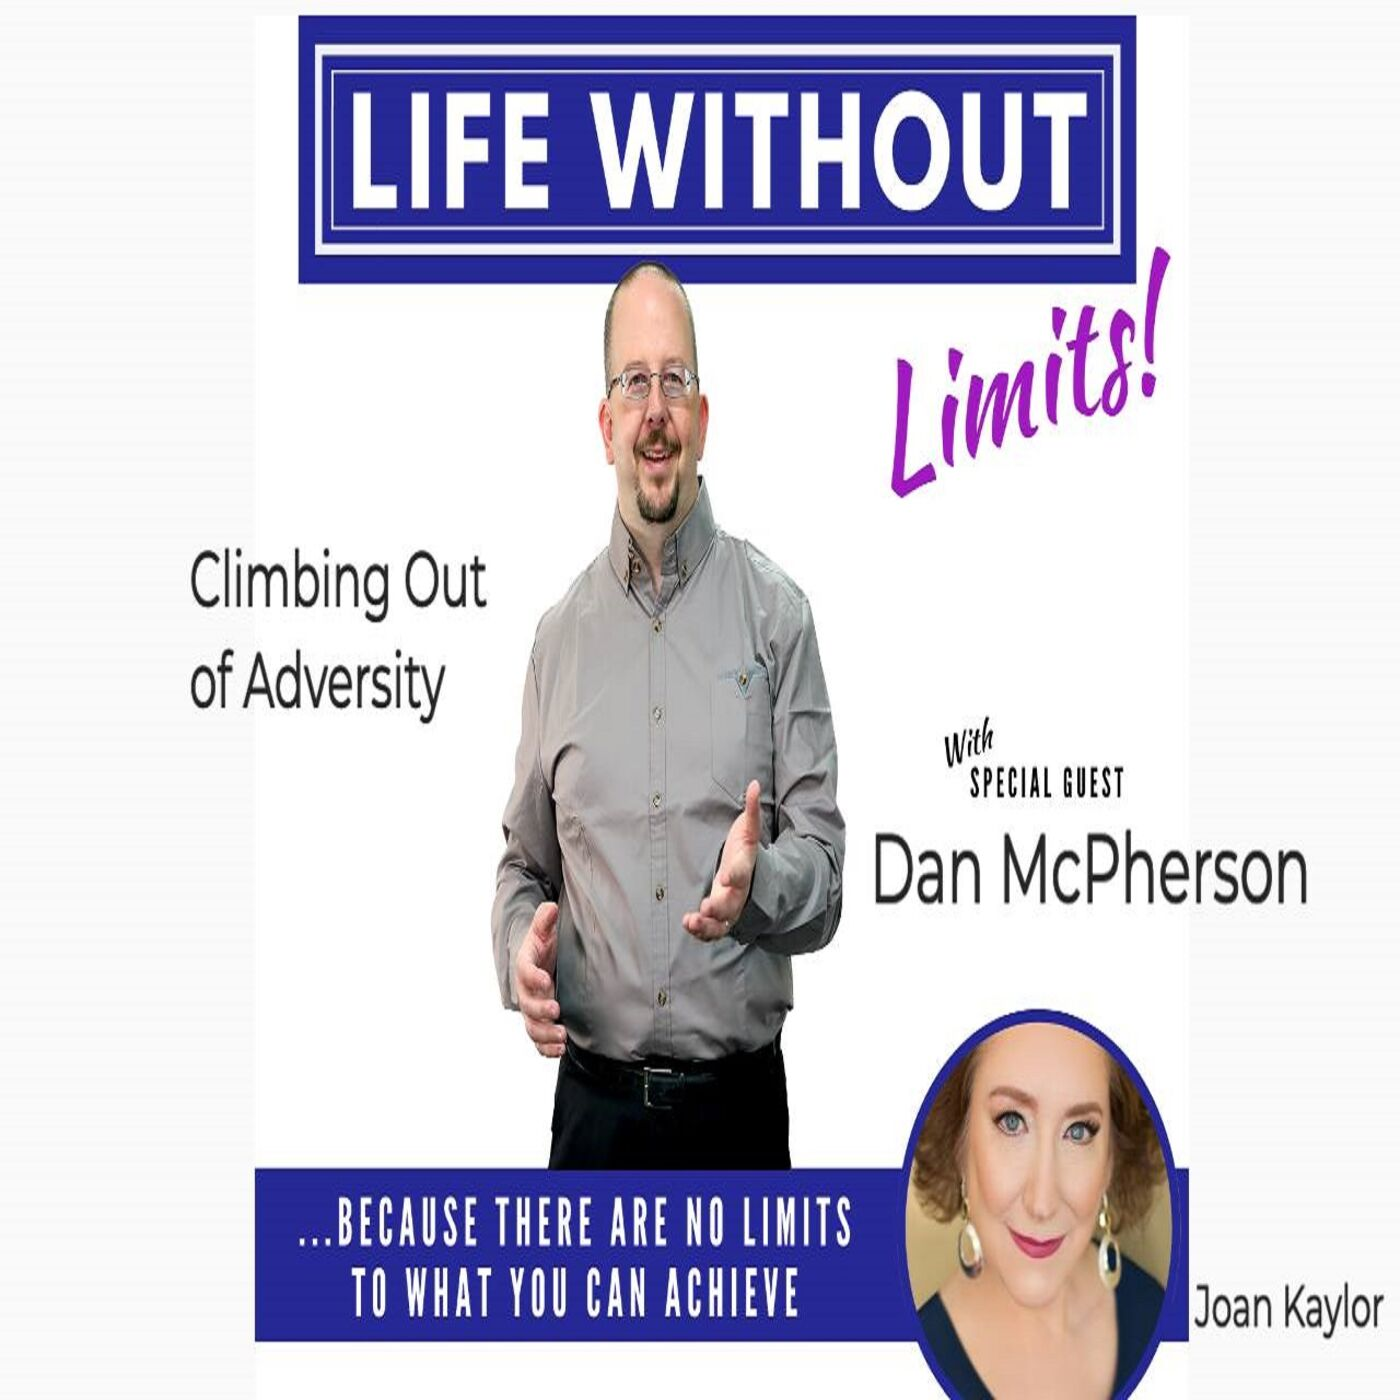 Climbing Out of Adversity with Dan McPherson